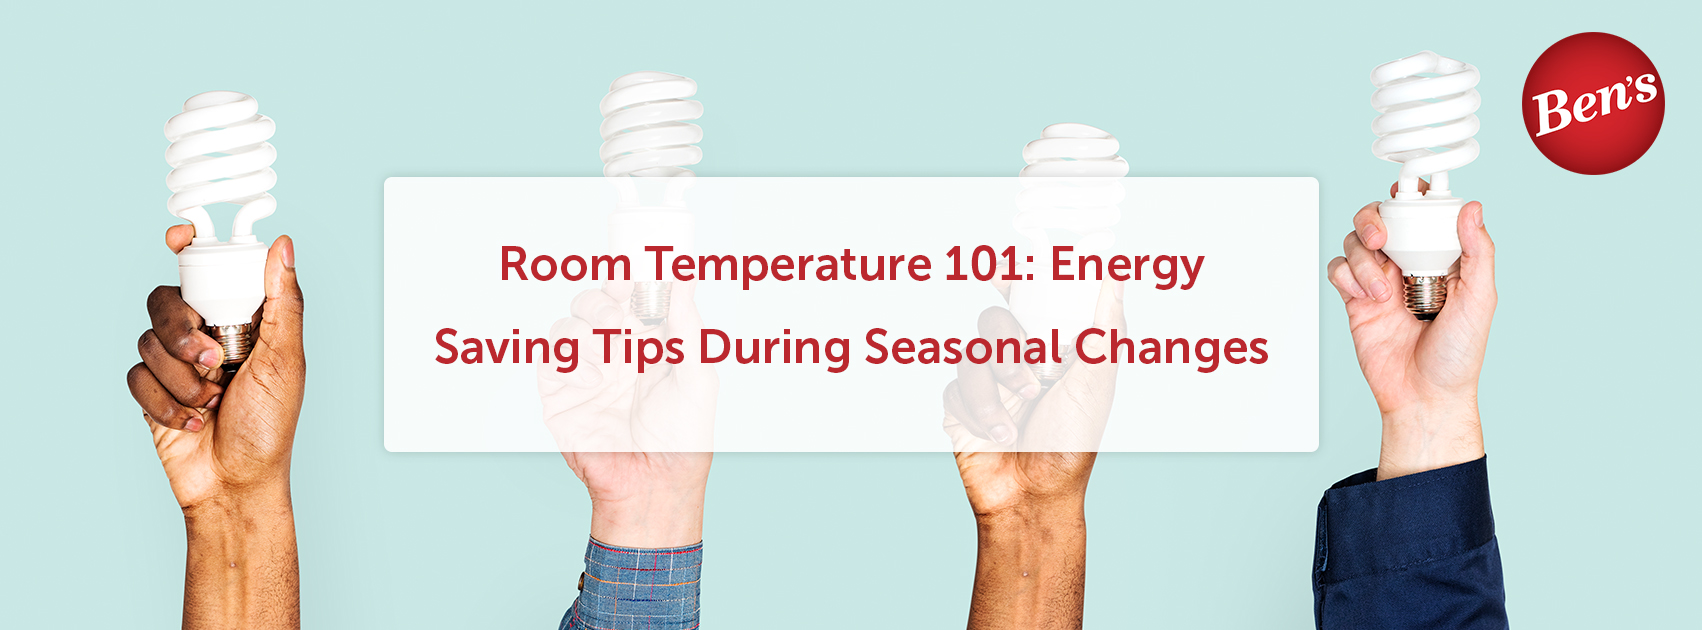 Room Temperature 101- Energy Saving Tips During Seasonal Changes